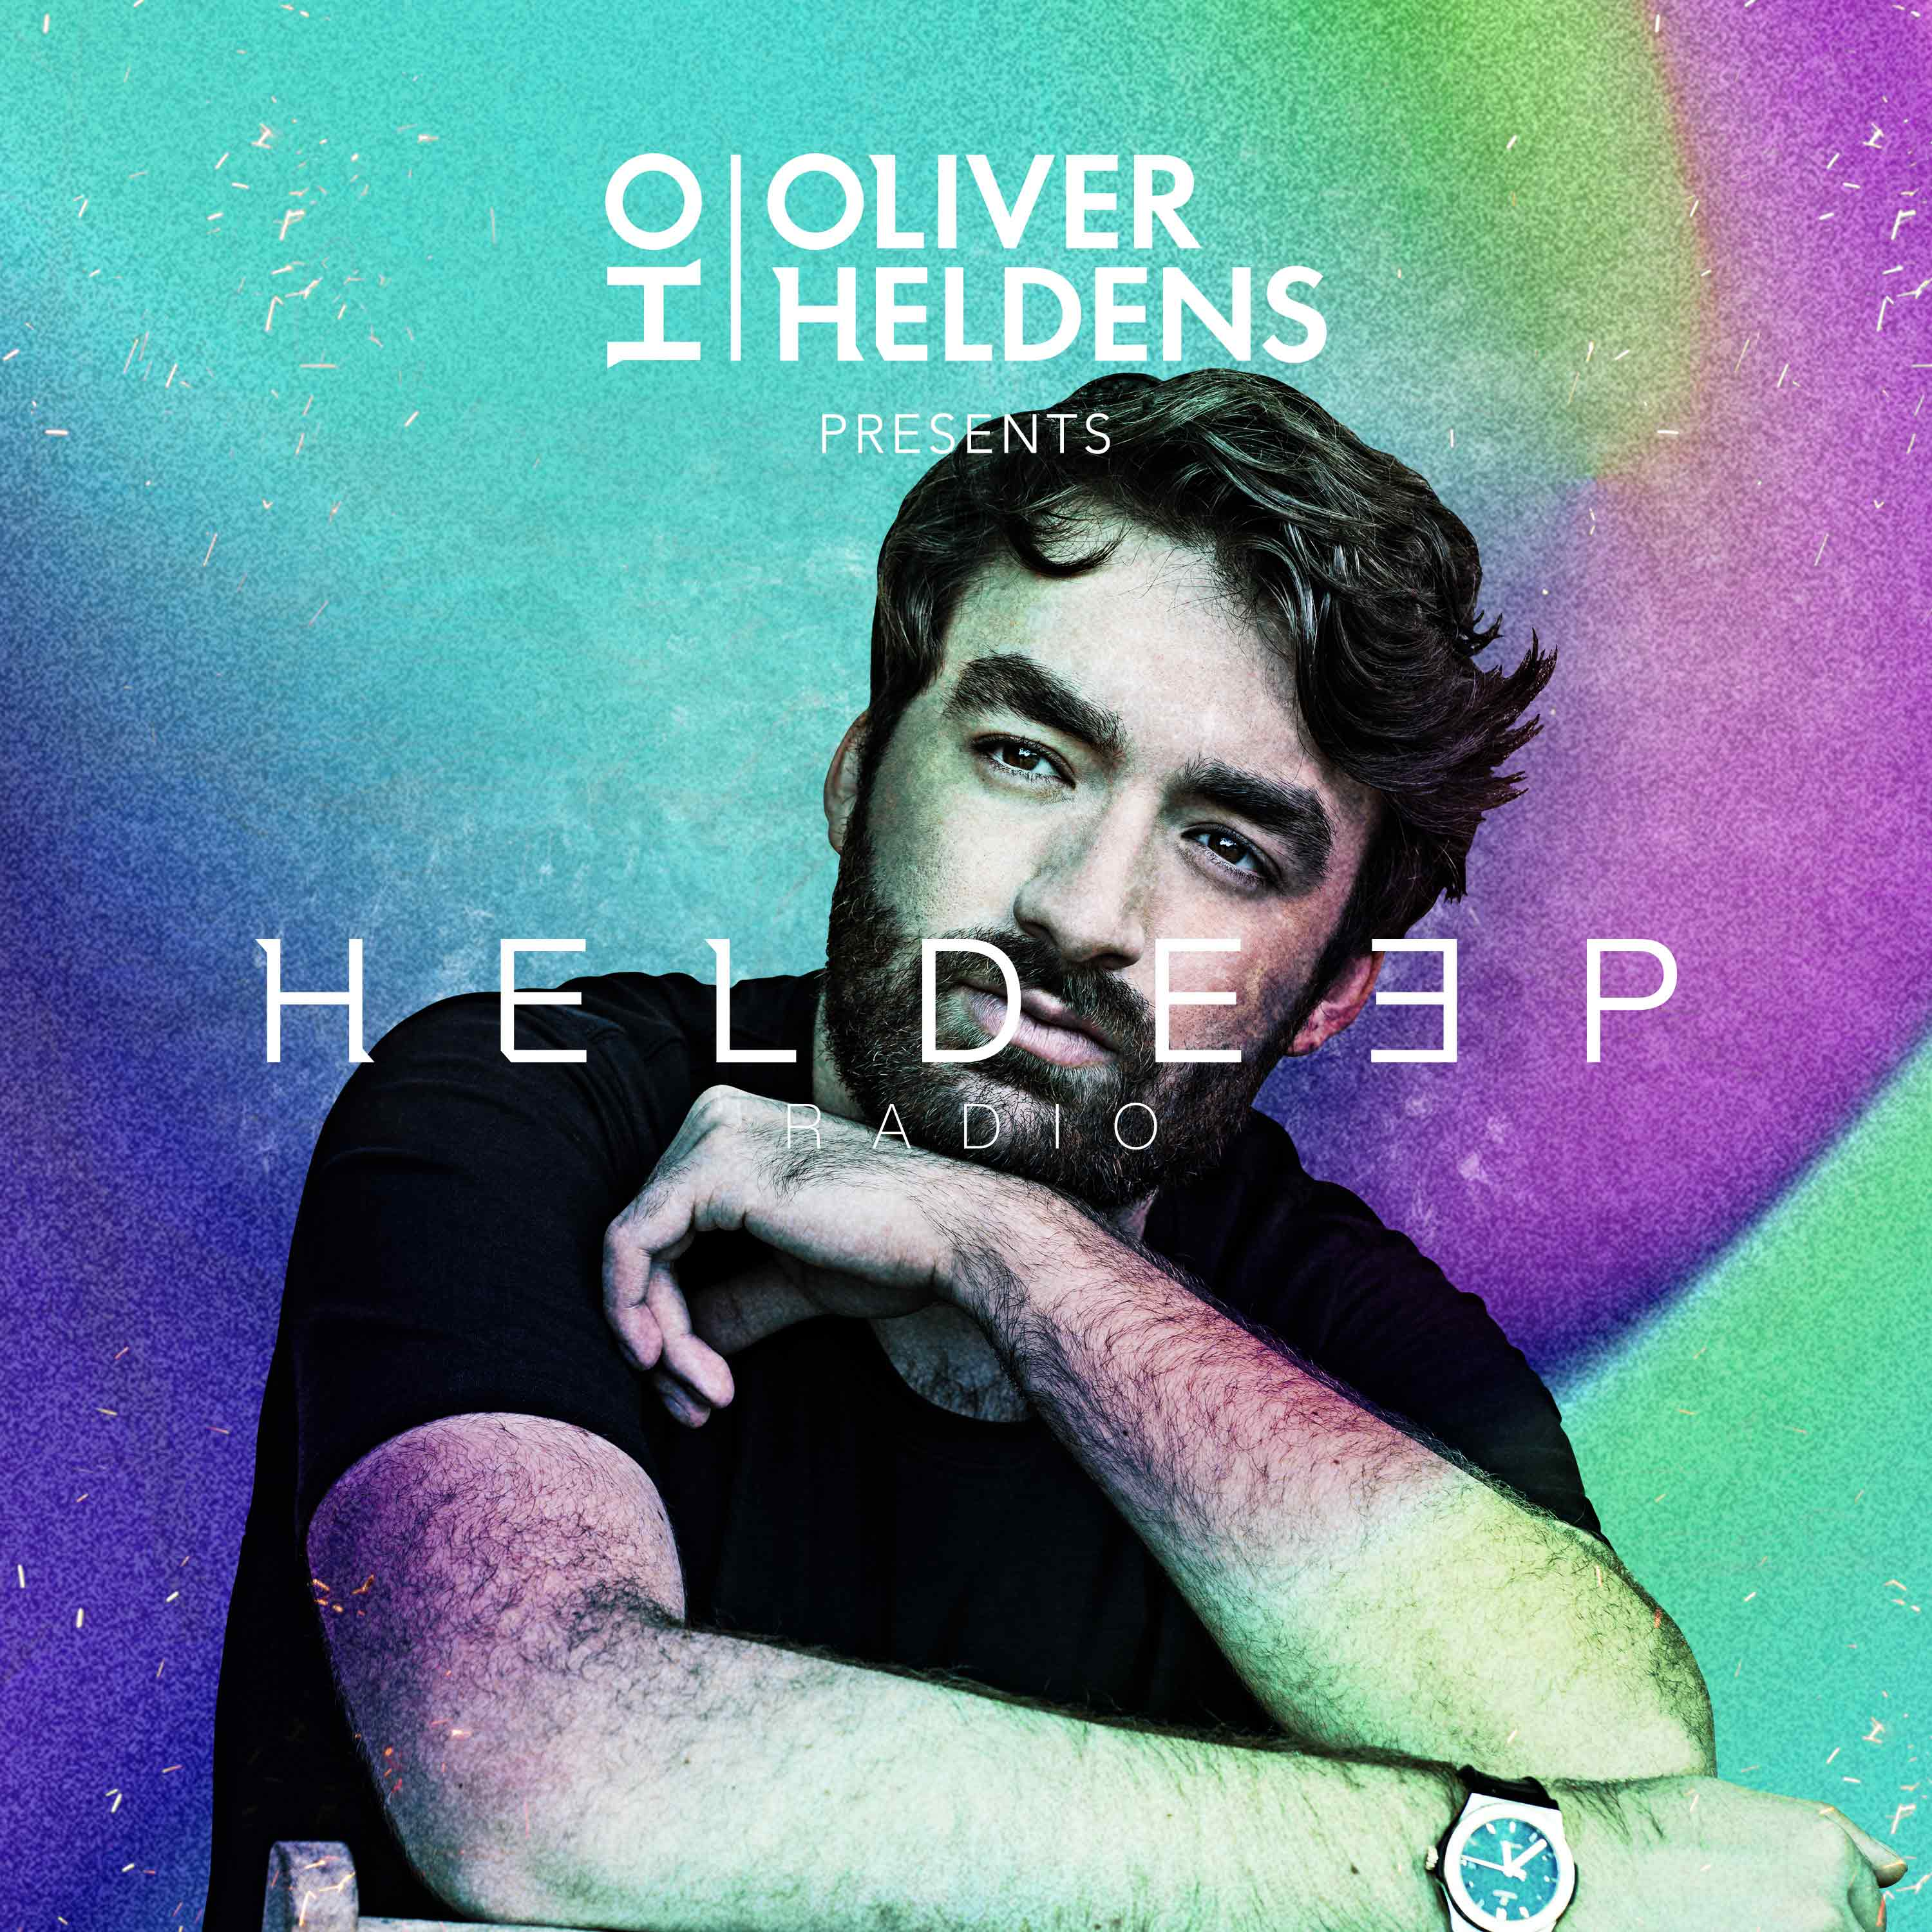 Heldeep Radio